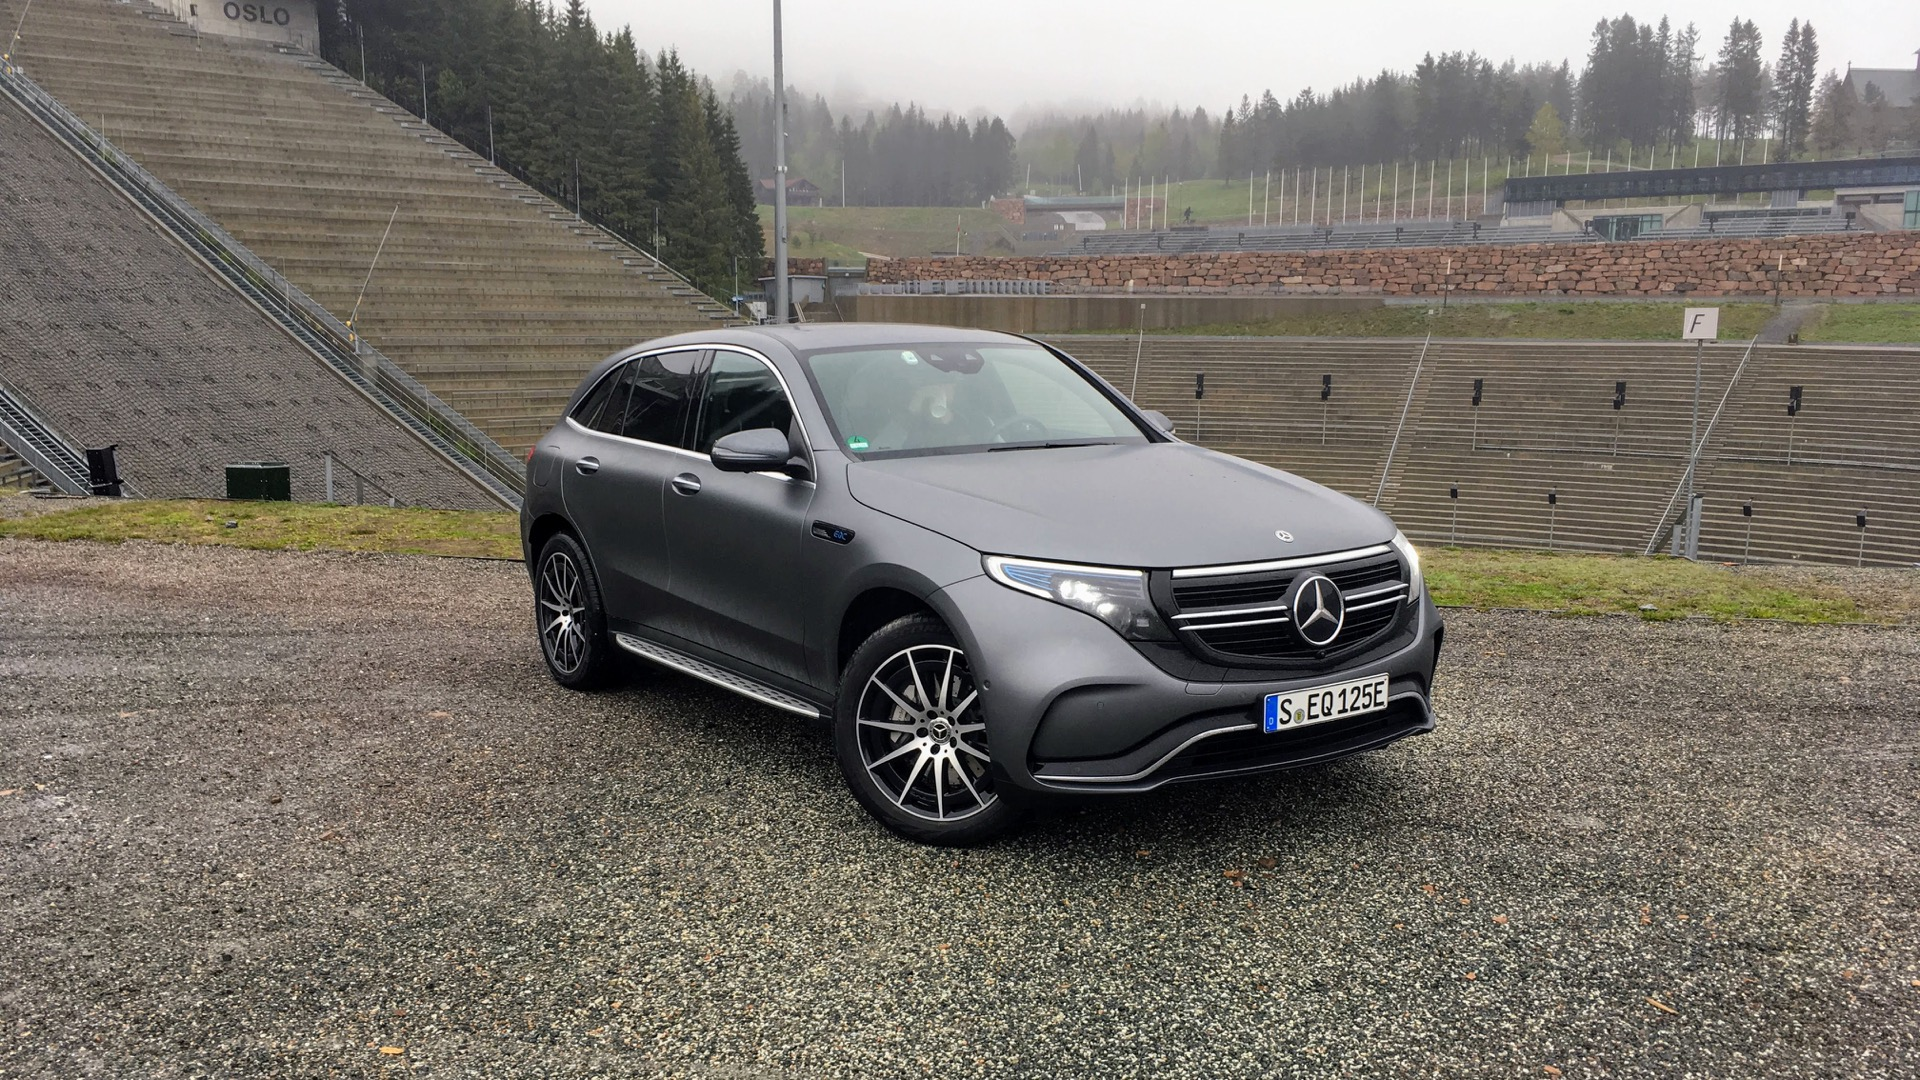 First drive review 2020 Mercedes Benz EQC electric crossover 1920x1080